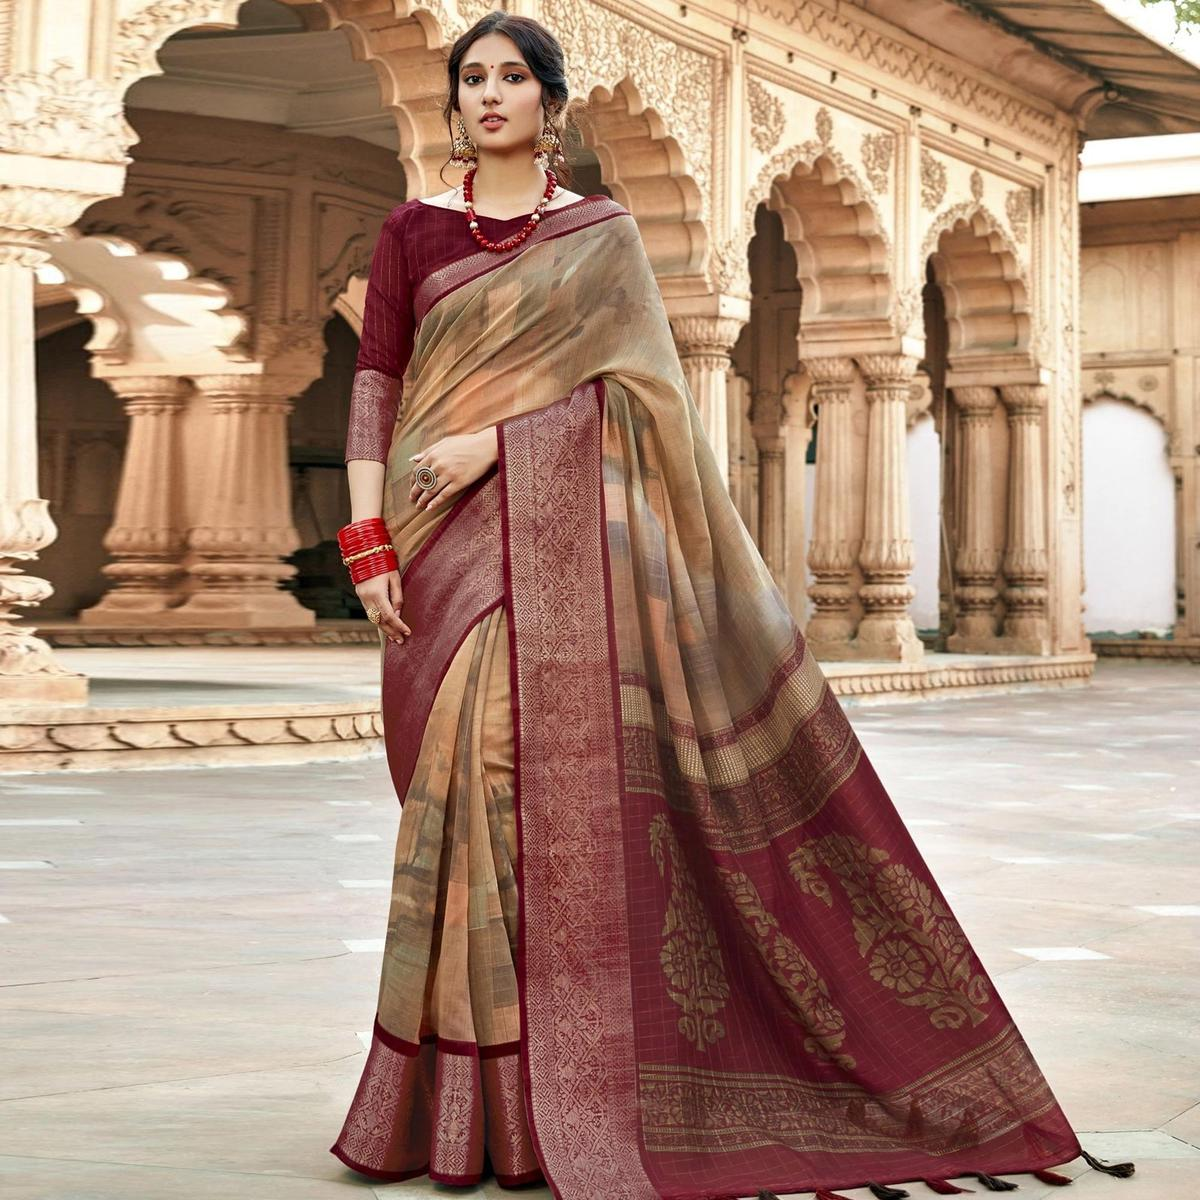 Triveni Beige & Maroon Colored Cotton Silk Printed Saree With Blouse Piece